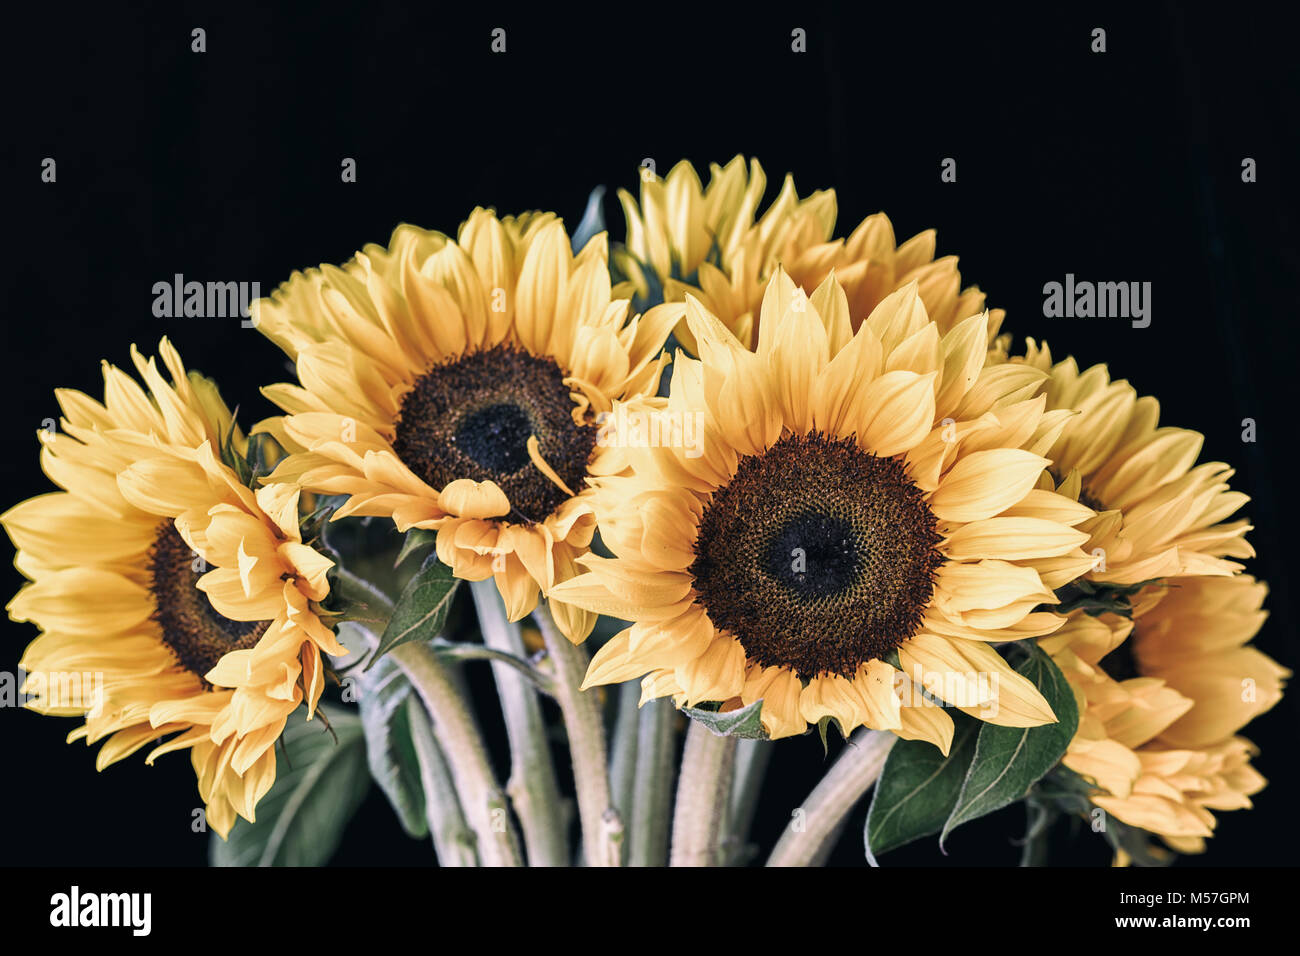 Bouquet Of Bright Sunflowers Against Black Background In Vintage Style